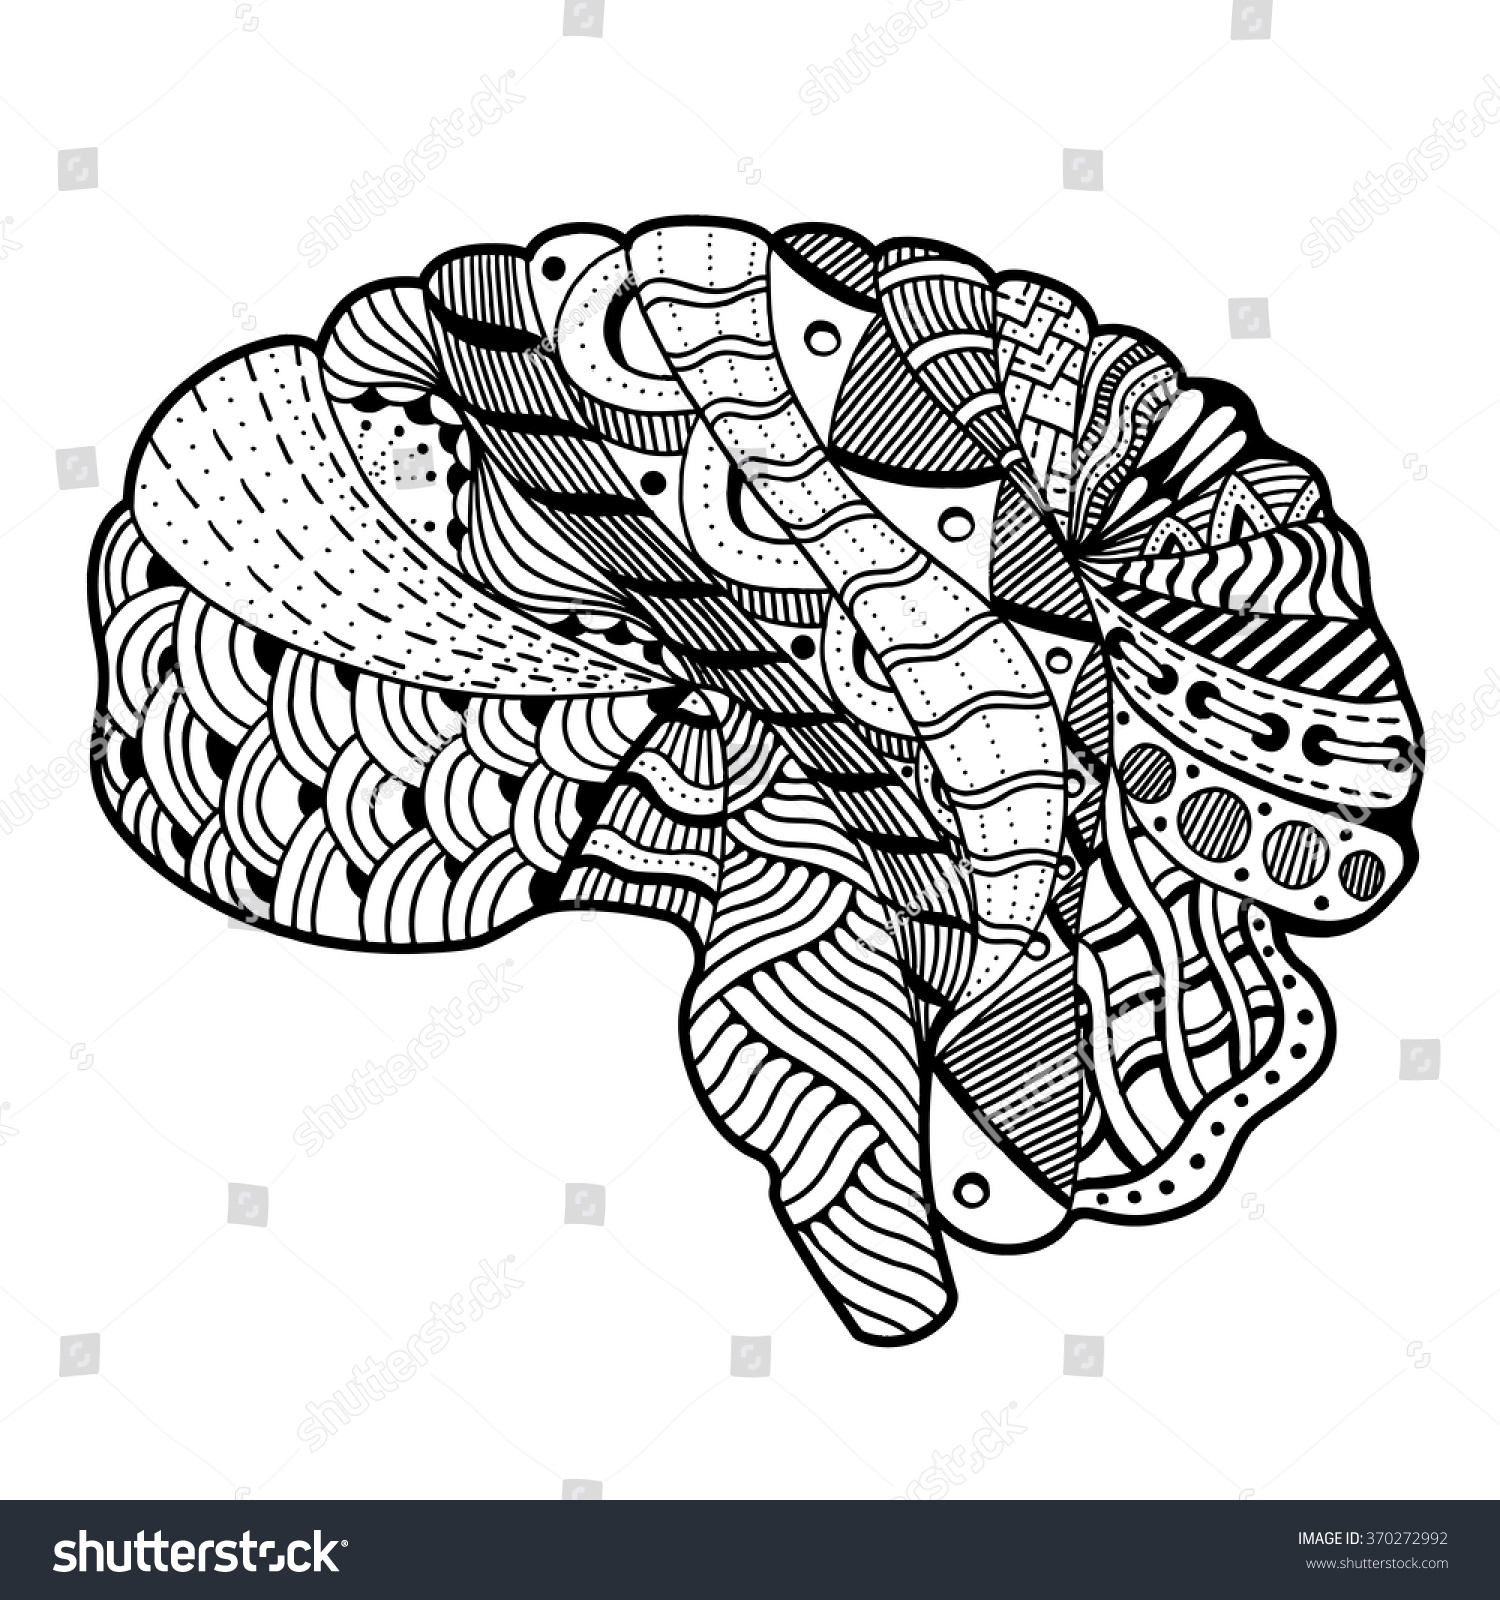 Zentangle Sketchy Human Brain Doodle Decorative Stock Vector